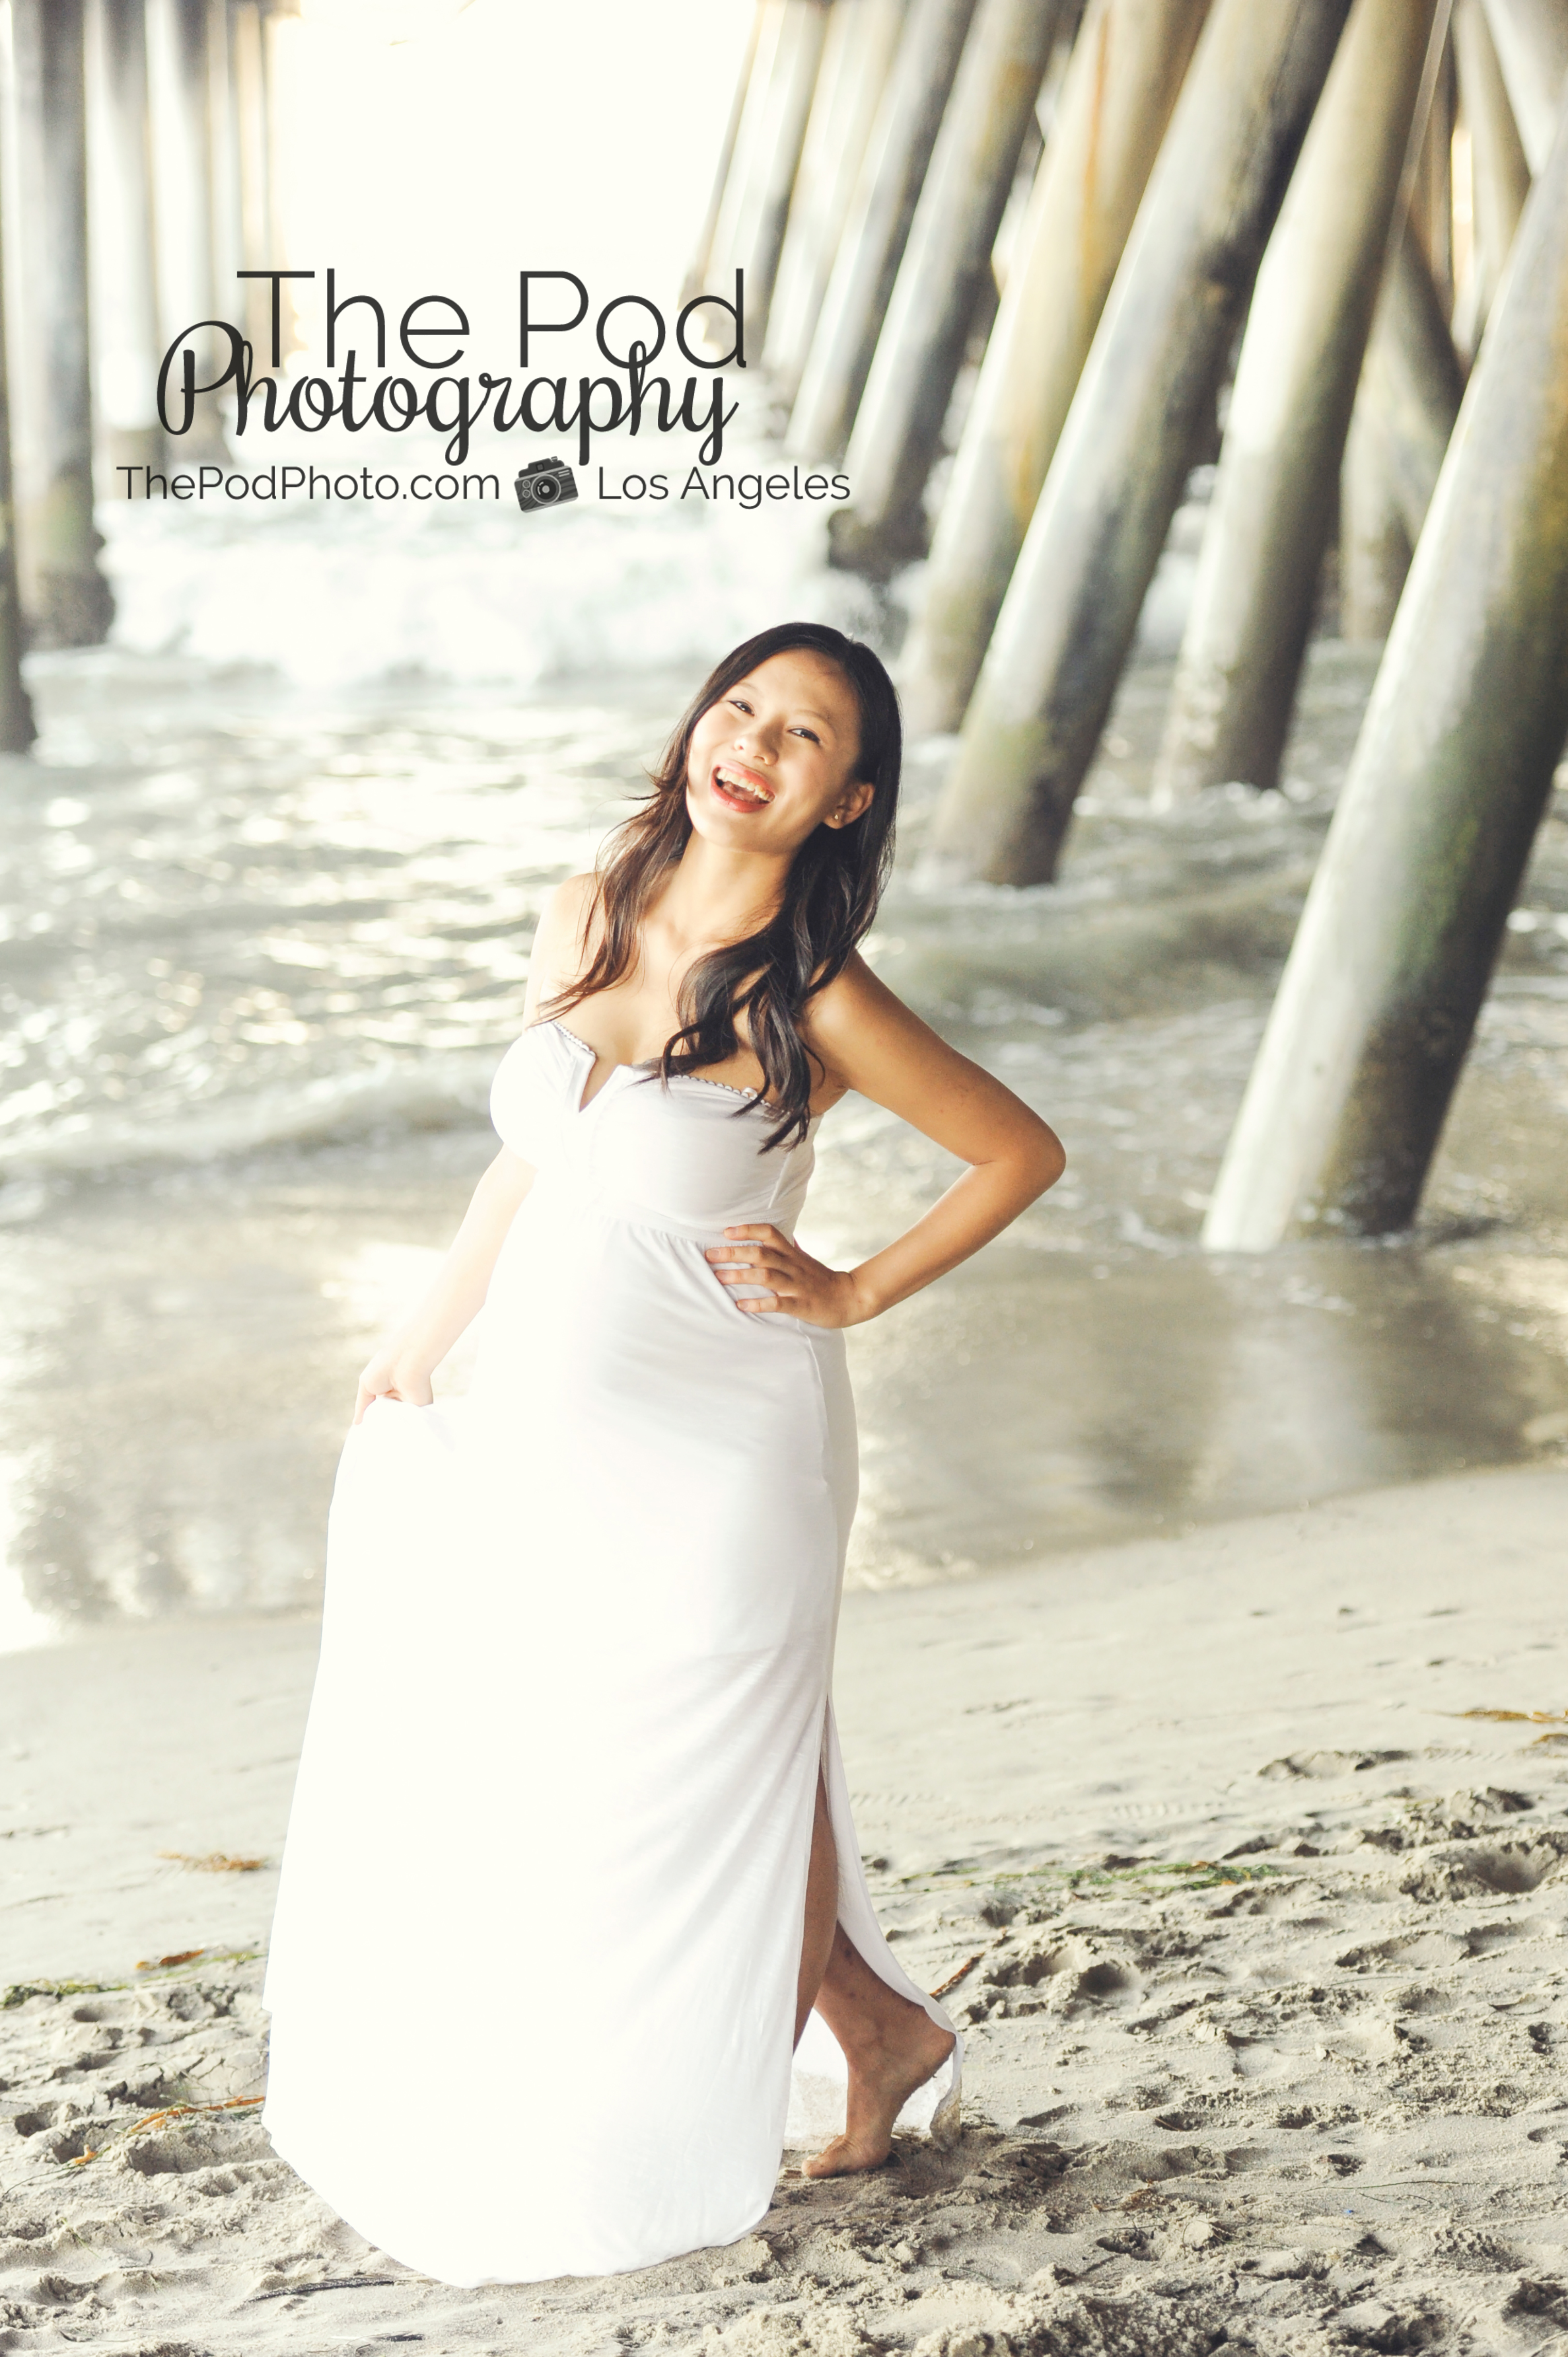 Santa Monica Pier Beach Maternity Photo Shoot Los